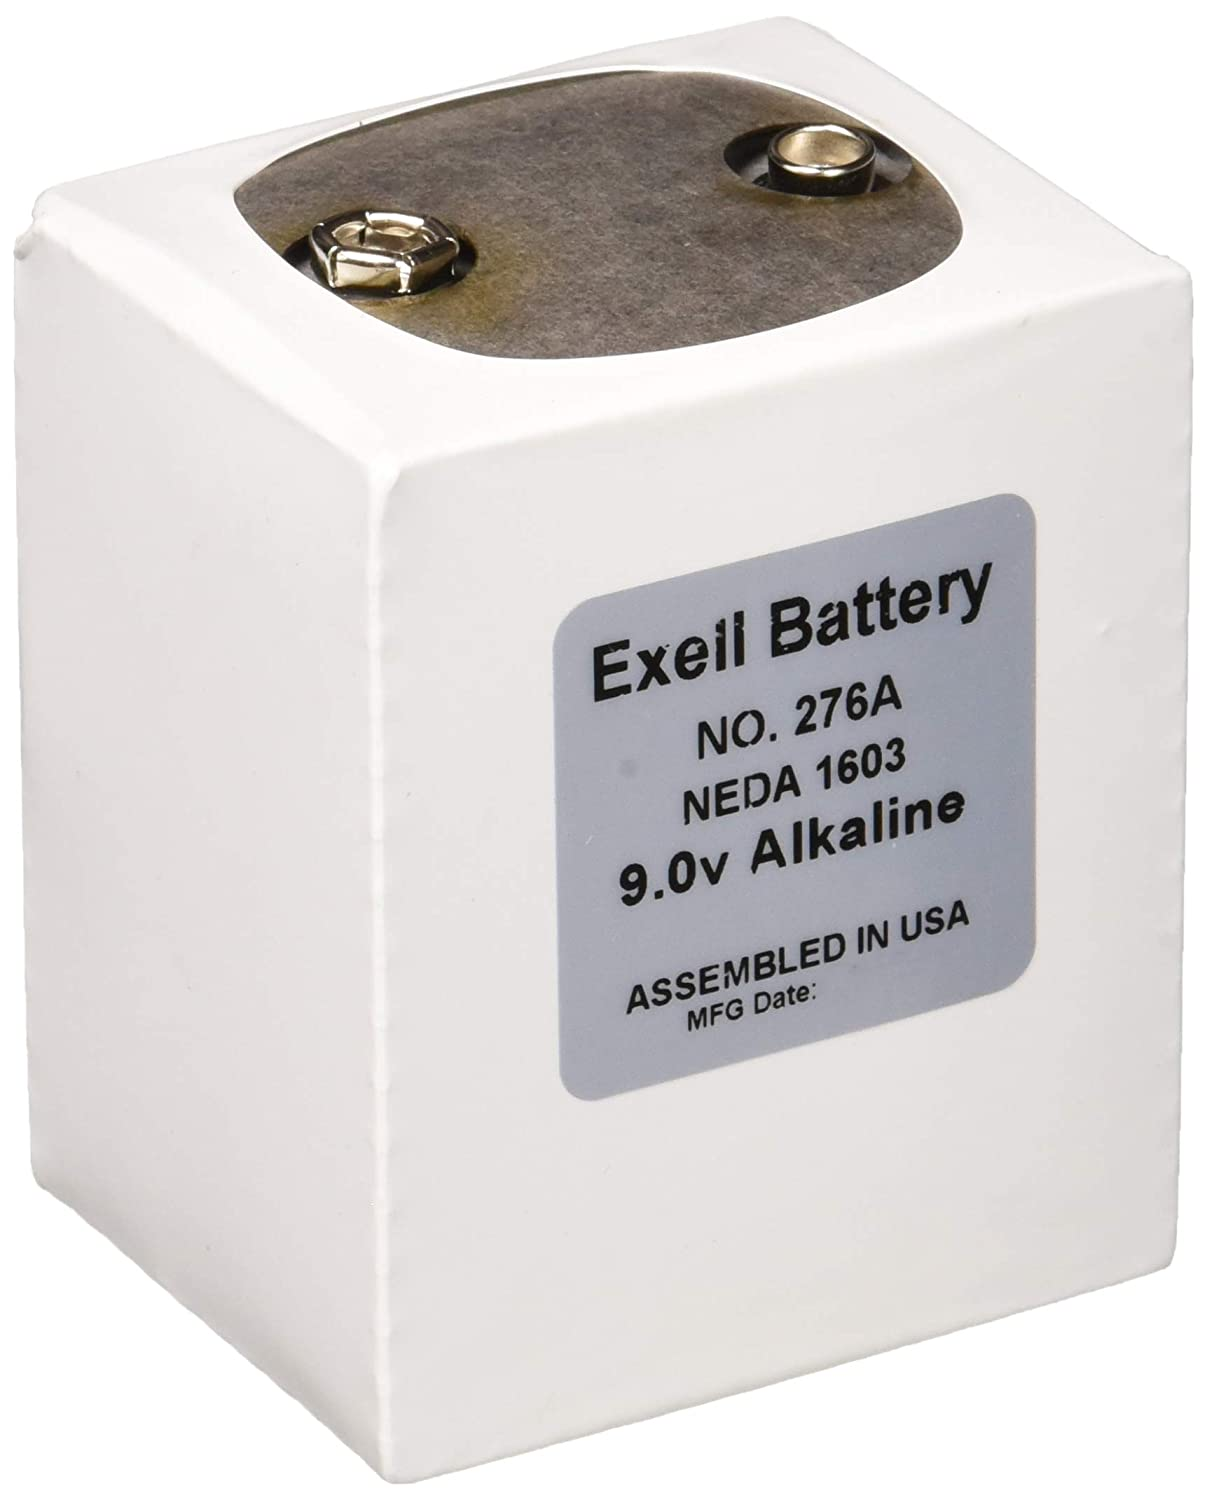 The 276 is a battery replacement for the NEDA 1603 battery